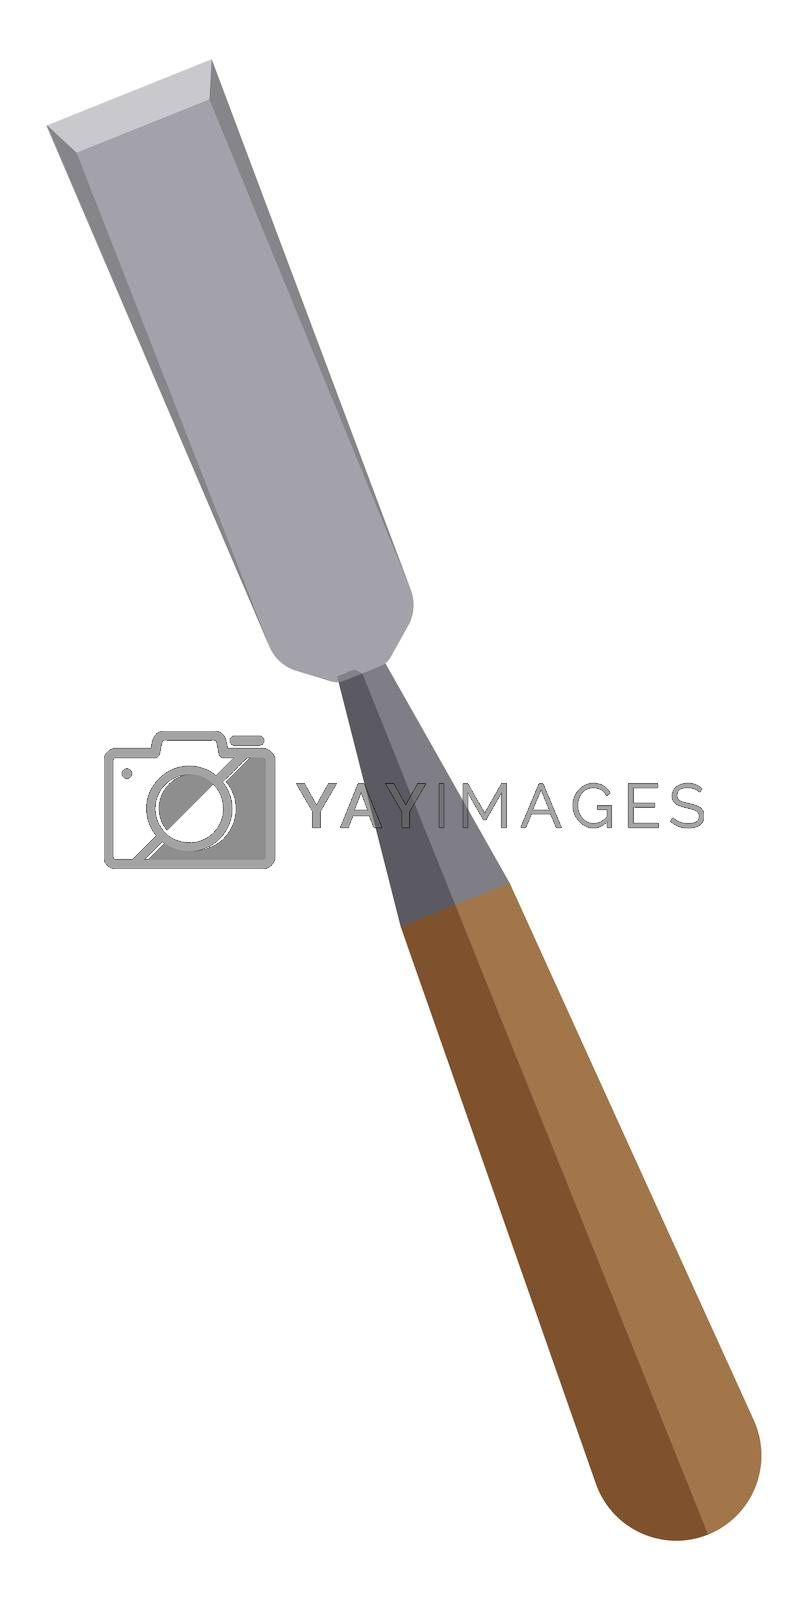 Chisel tool, illustration, vector on white background